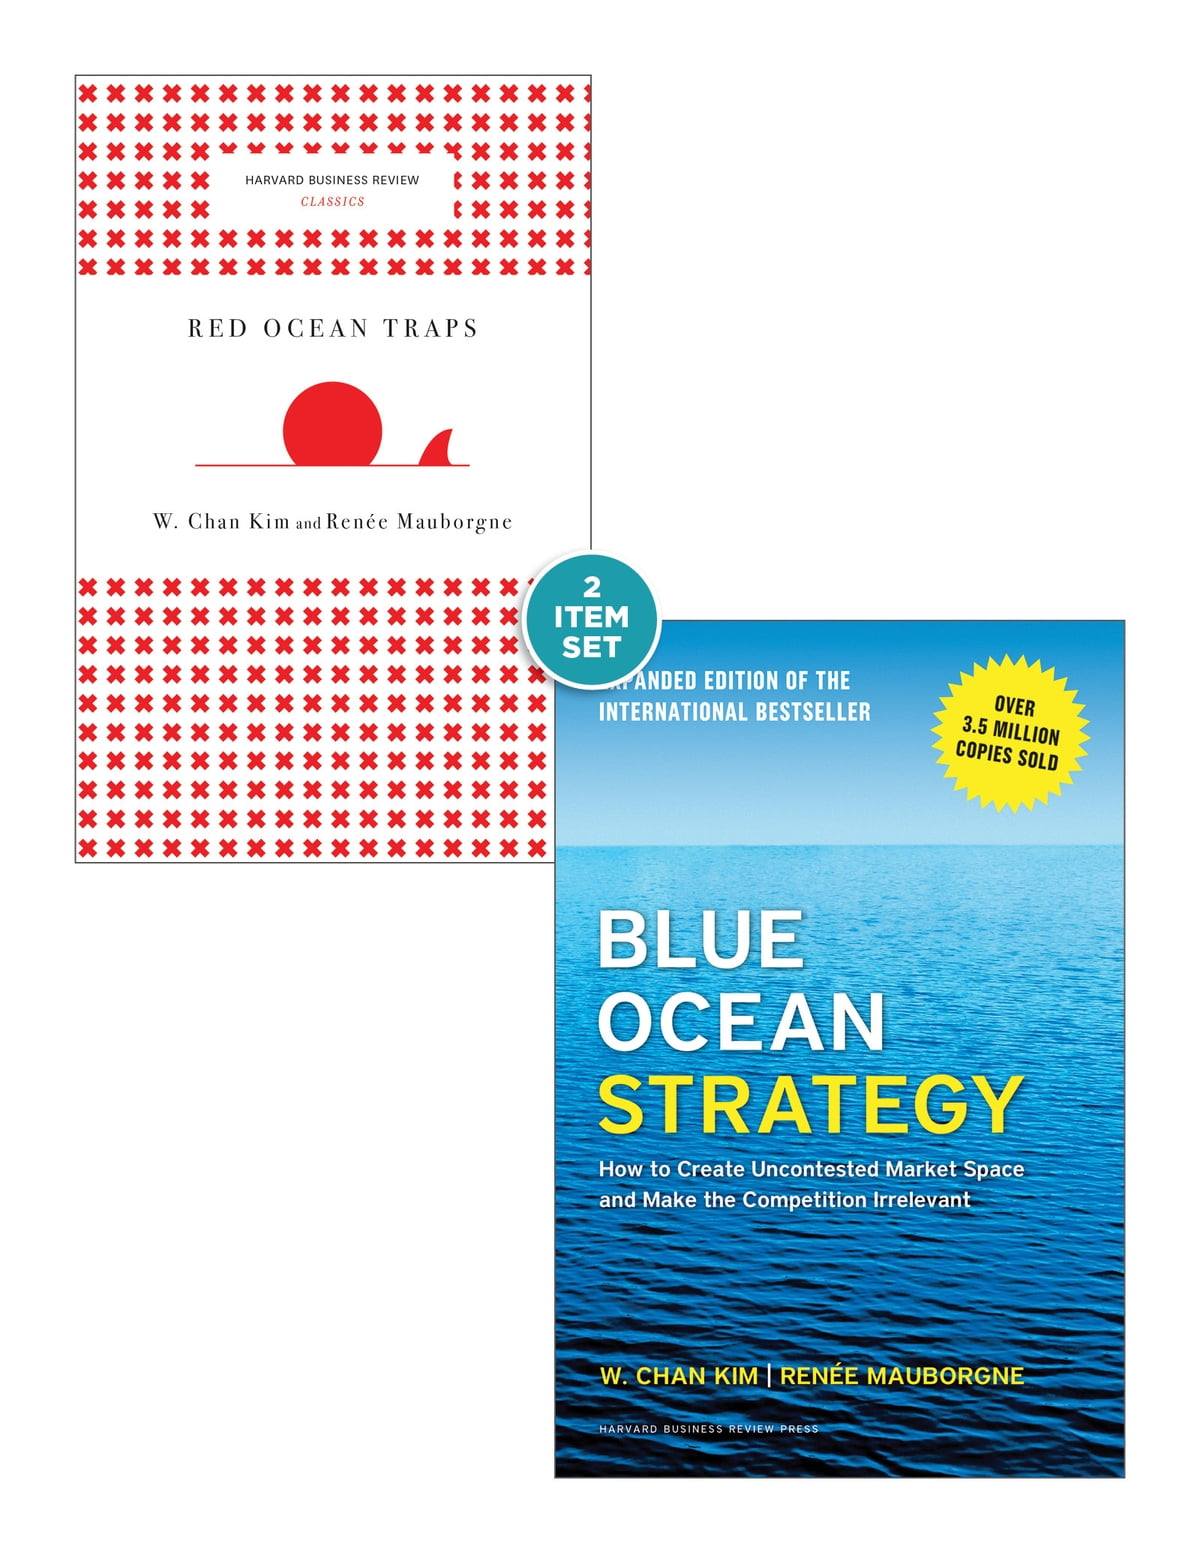 blue ocean strategy literature review